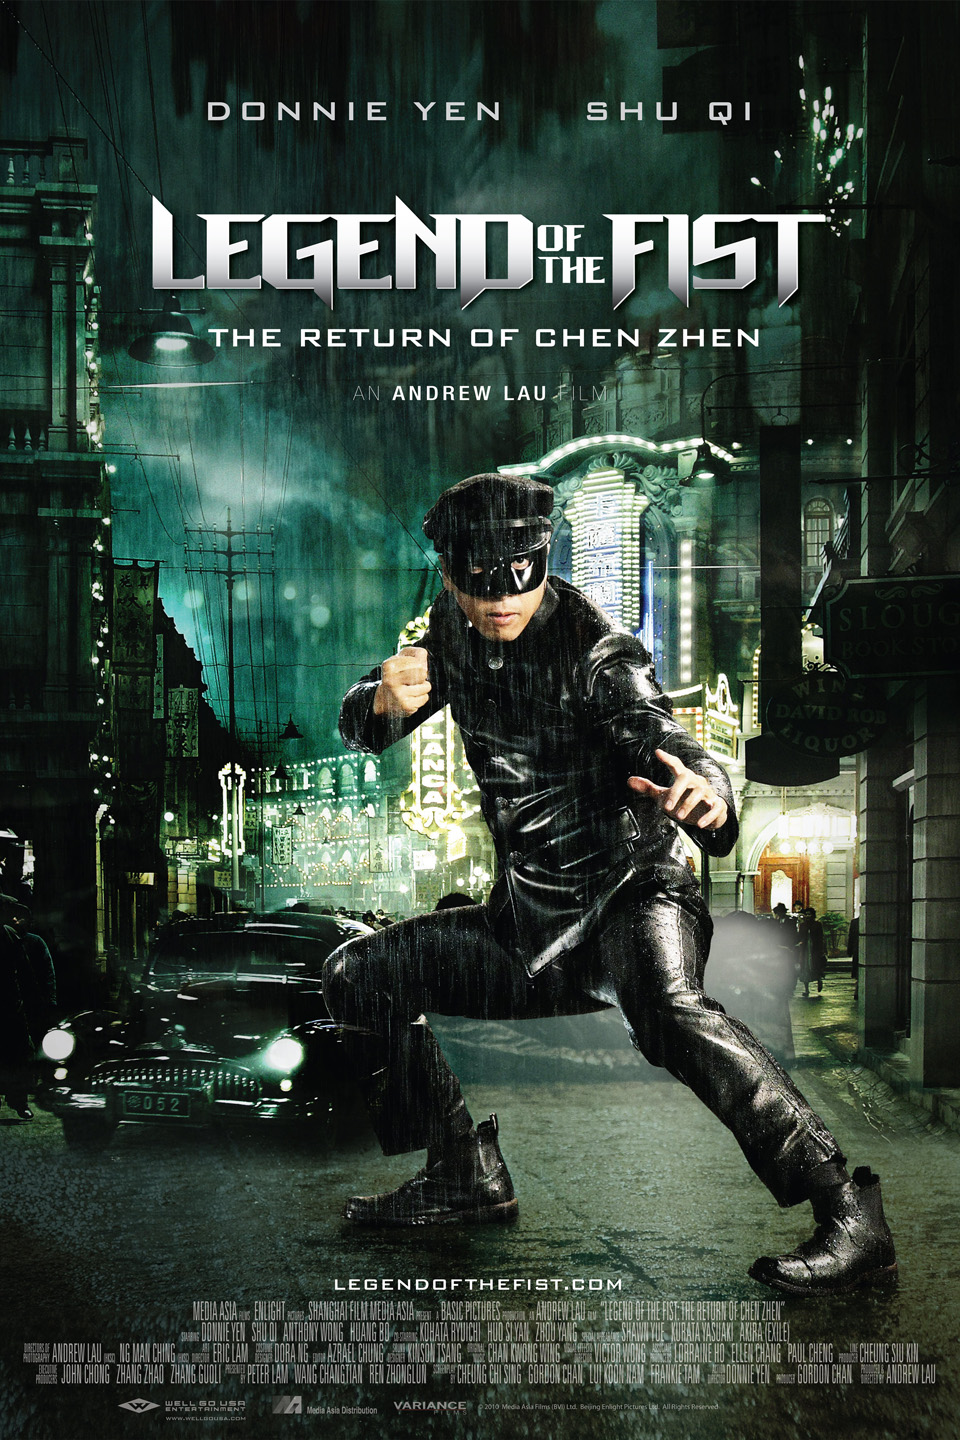 Legend of the Fist: The Return of Chen Zhen-Jing wu feng yun: Chen Zhen